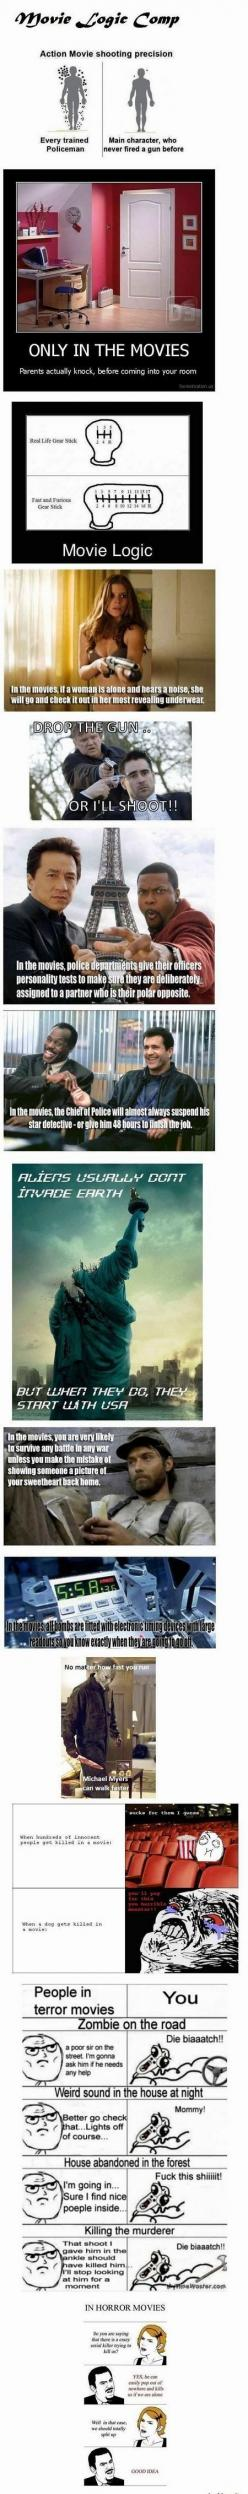 Hilarious Pictures of the week -55 pics- Movie Logic (Compialtion): Funny Pictures, Hilarious Pictures, Movie Logic Funny Truths, Pics Movie, Logic Compialtion, Funny Stuff, 55 Pics, 37 Pics